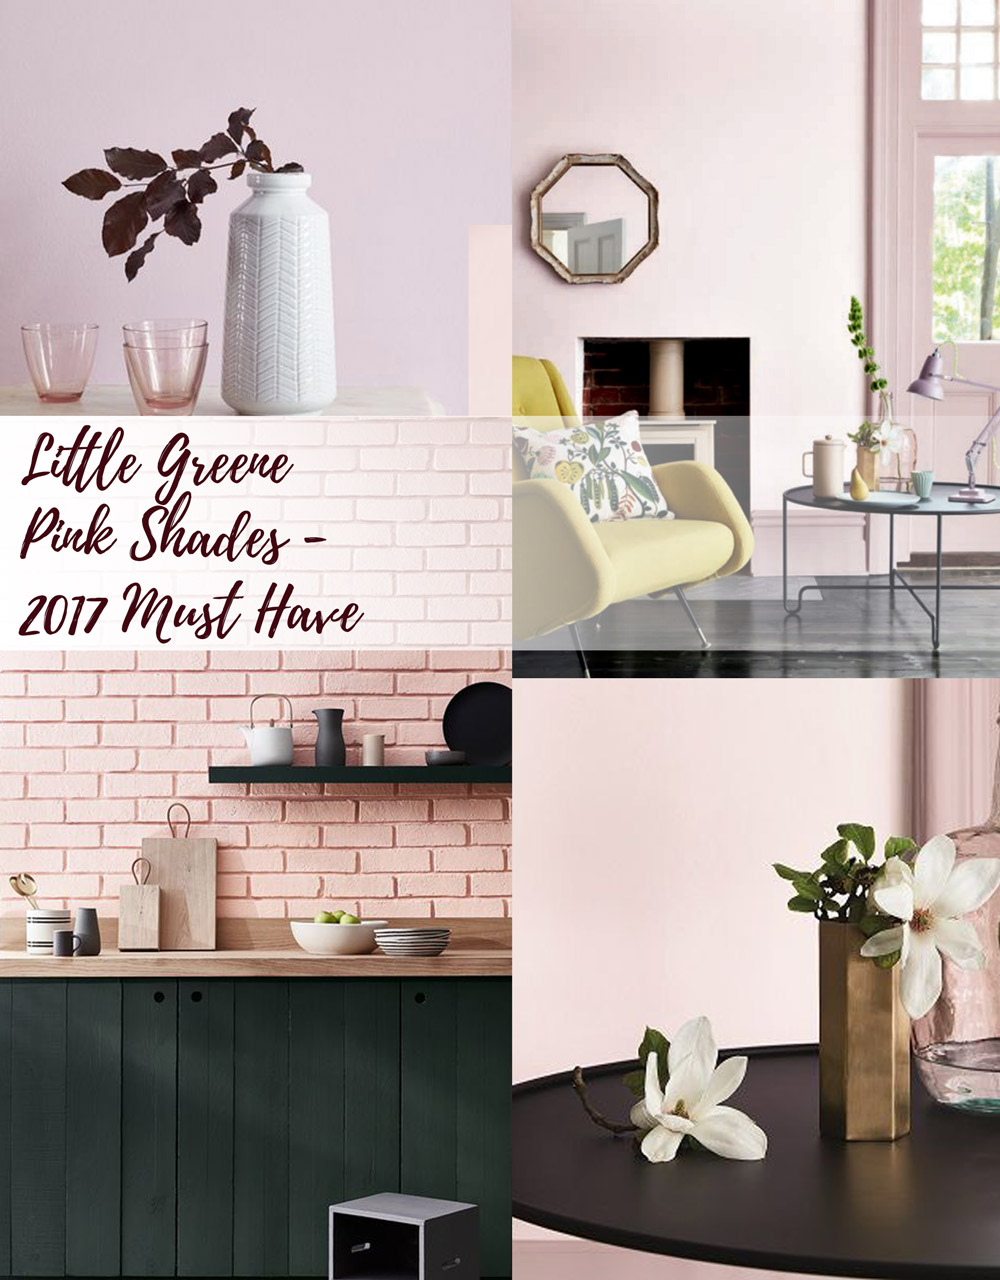 Little Greene Pink Shades 2017 Must Have www.AuthenticInterior.com Interior Design Blog